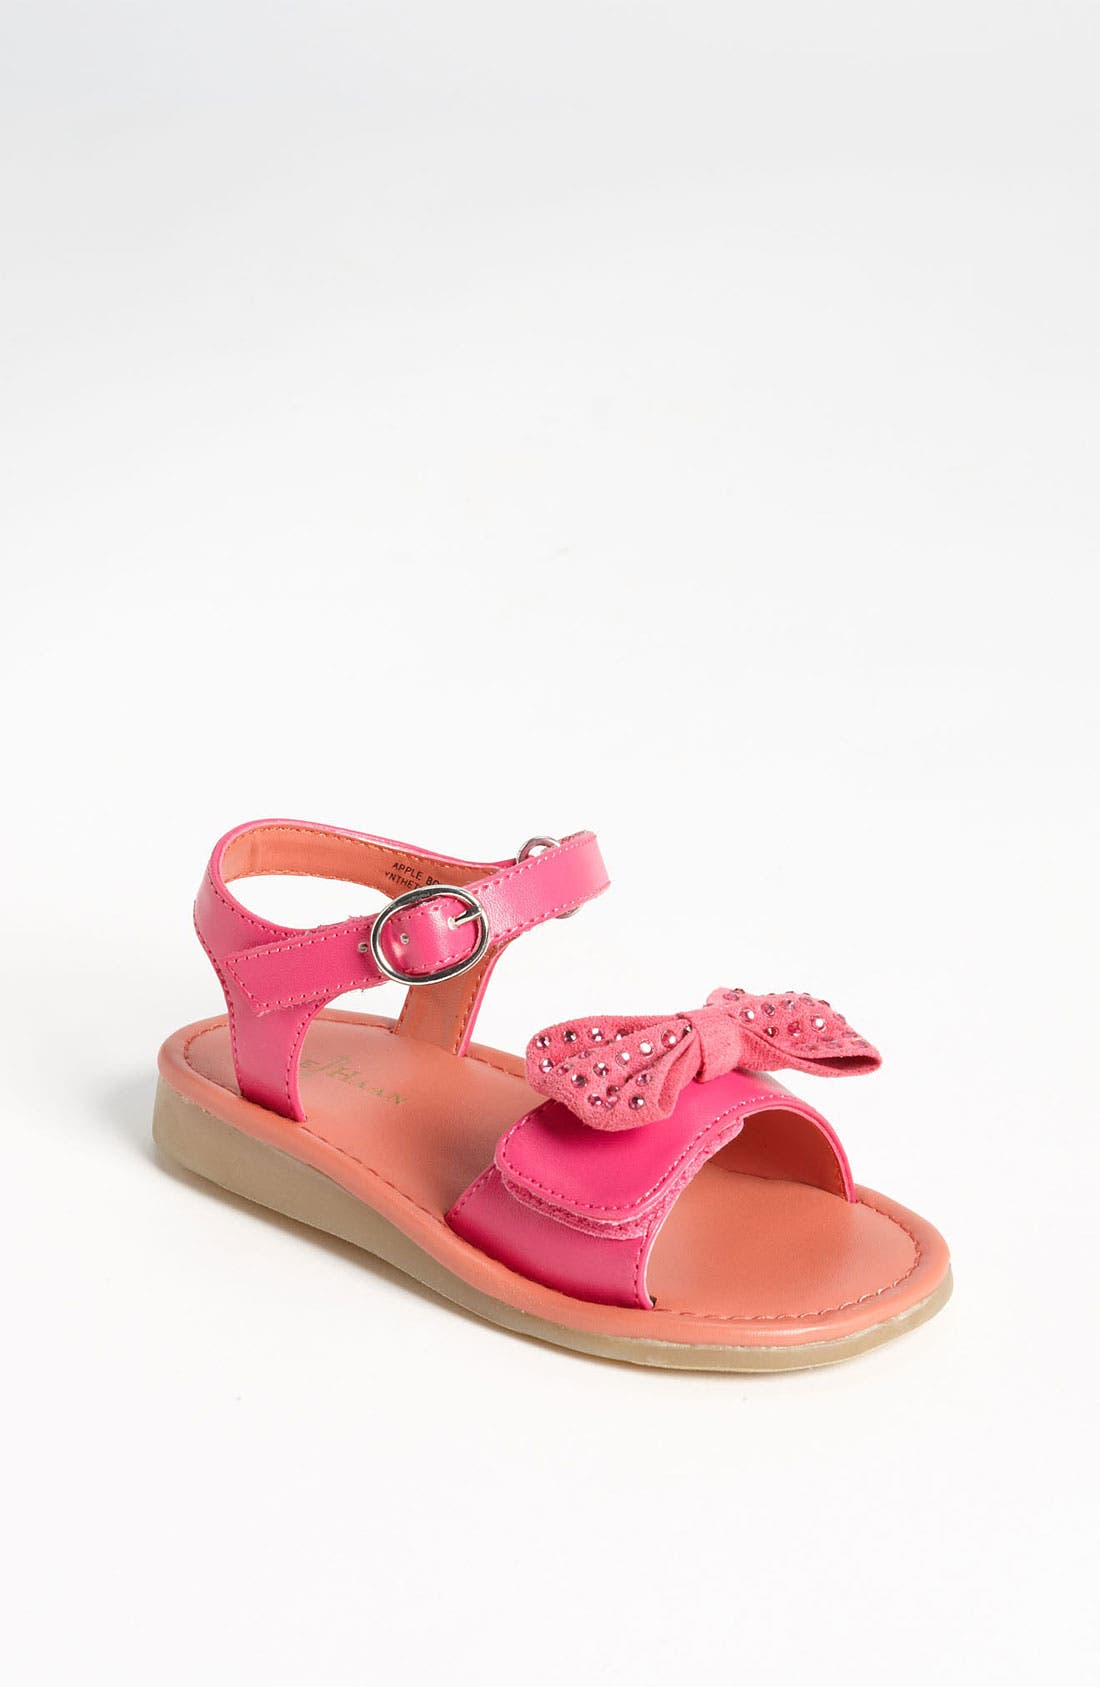 Alternate Image 1 Selected - Cole Haan 'Apple Bow' Sandal (Walker & Toddler)